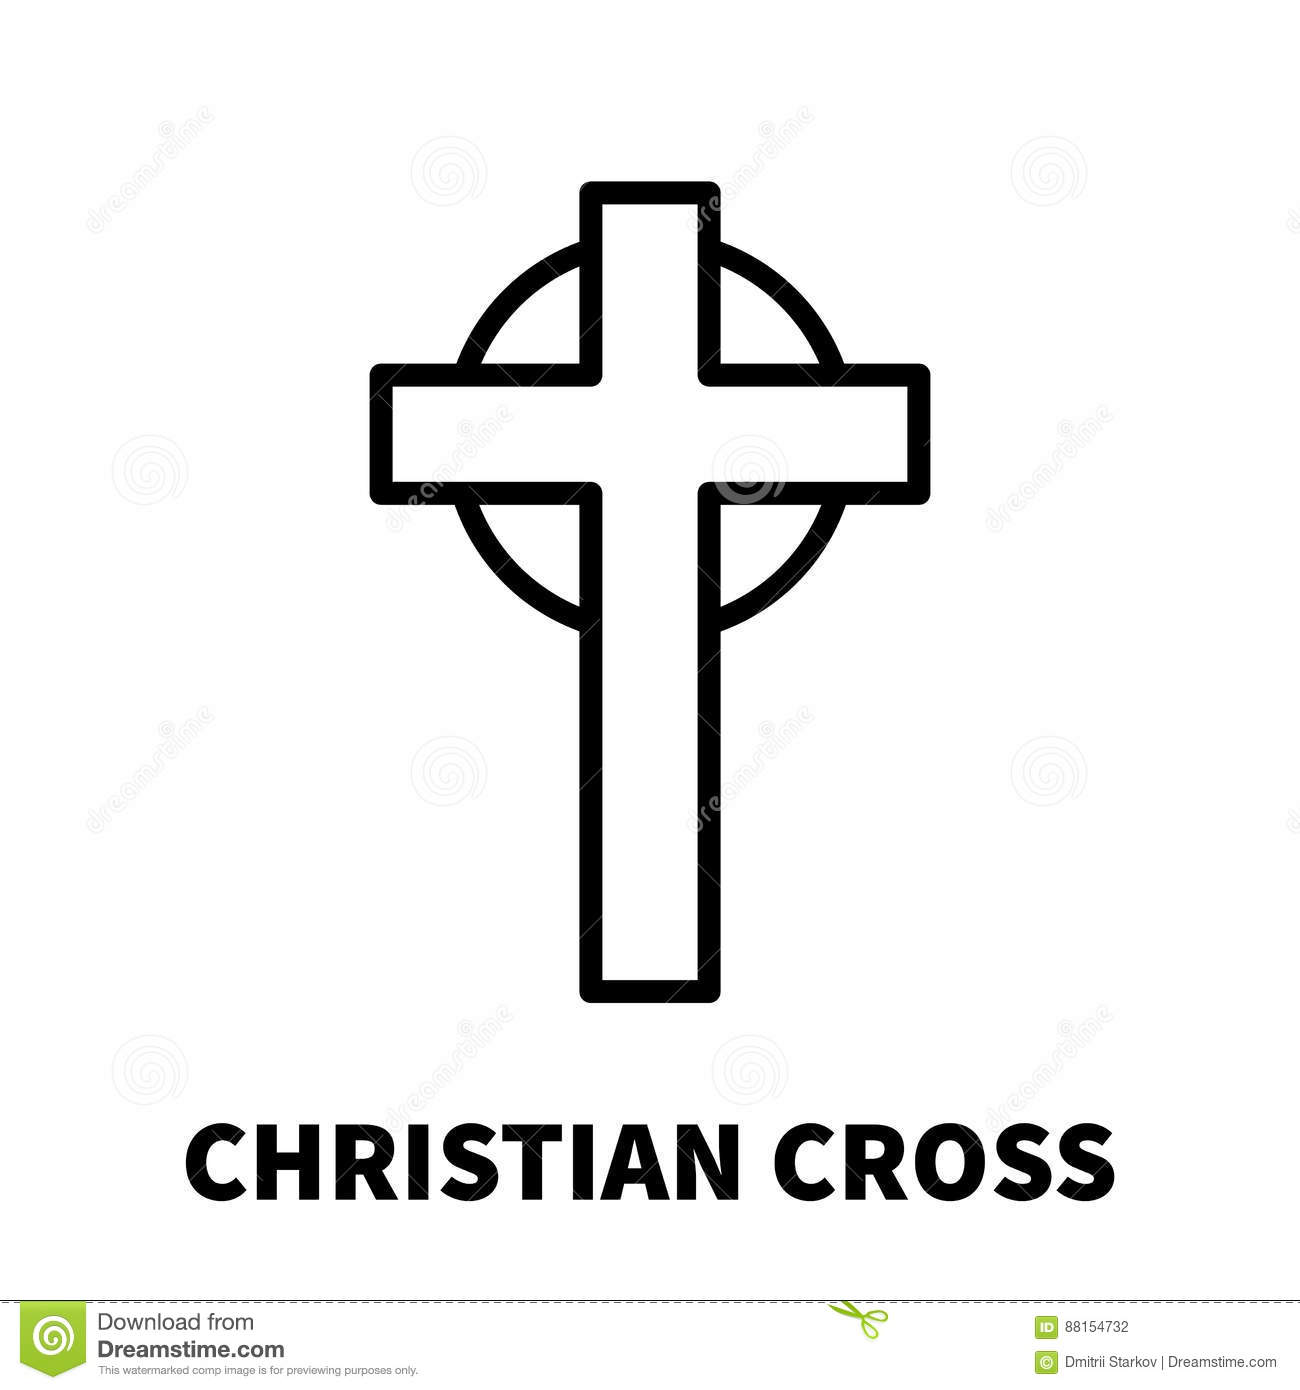 christian cross icon or logo in modern line style  cartoon vector